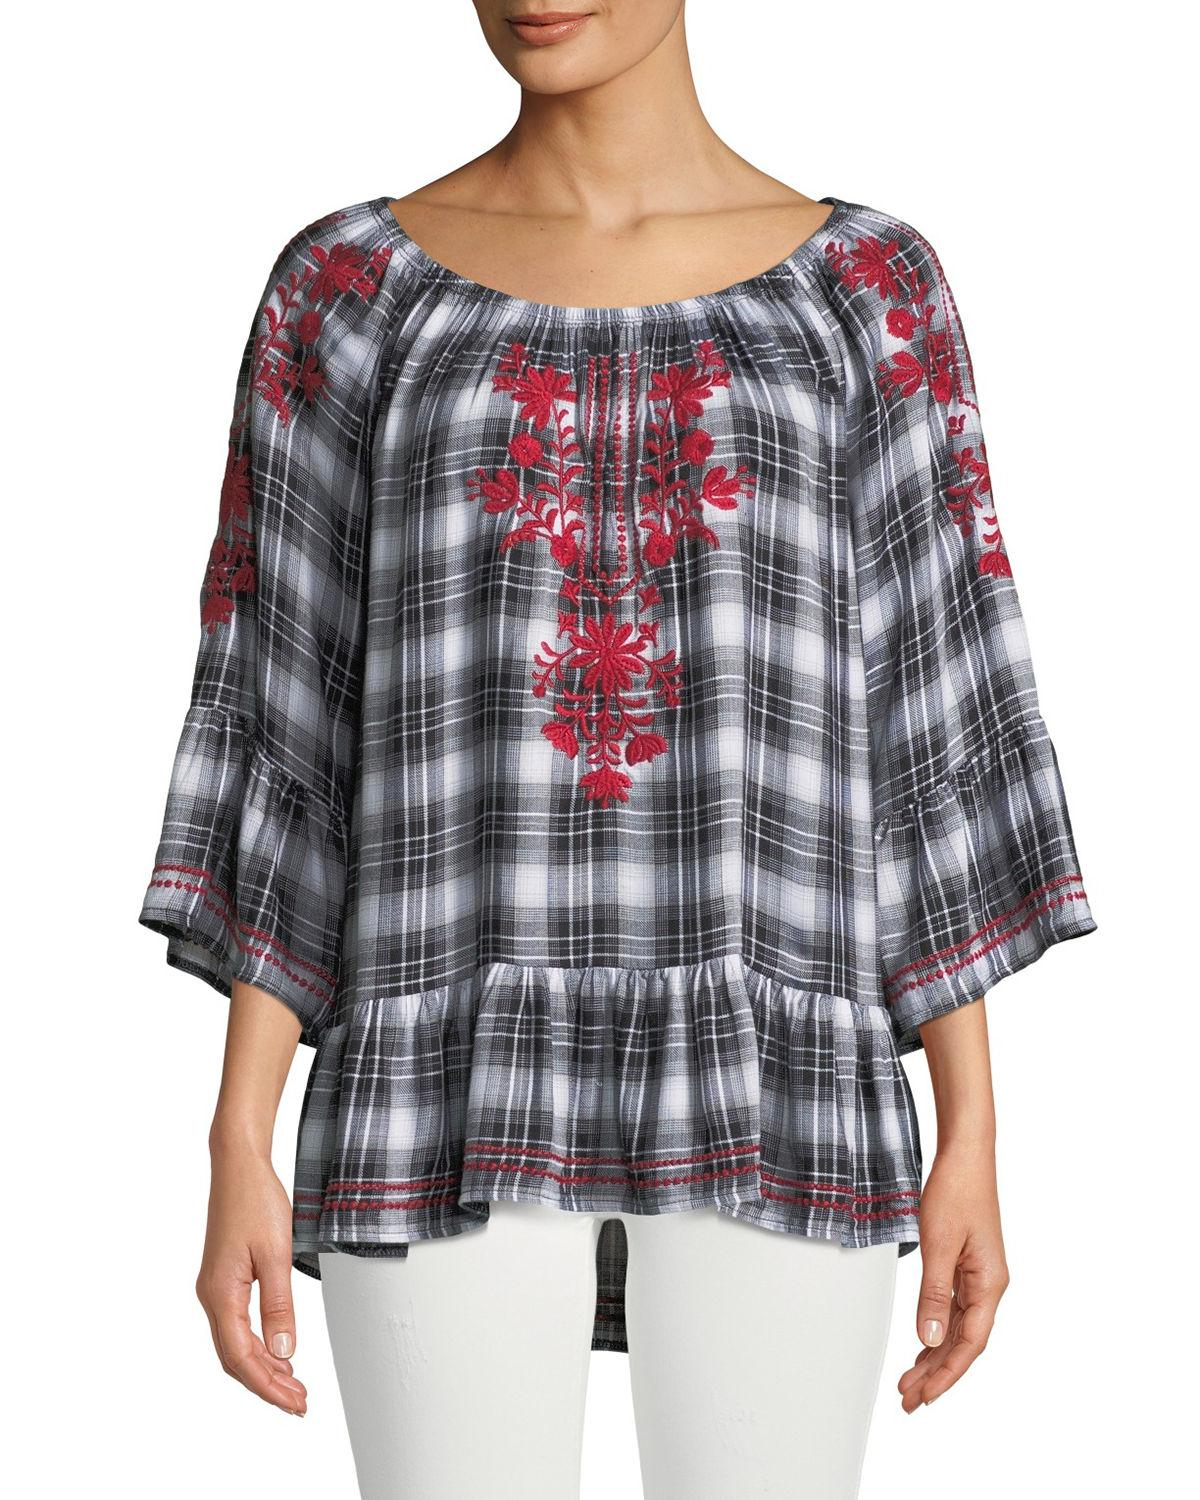 ffc6ee8cb3d282 Lyst - Neiman Marcus Embroidered Plaid Peasant Blouse in Black